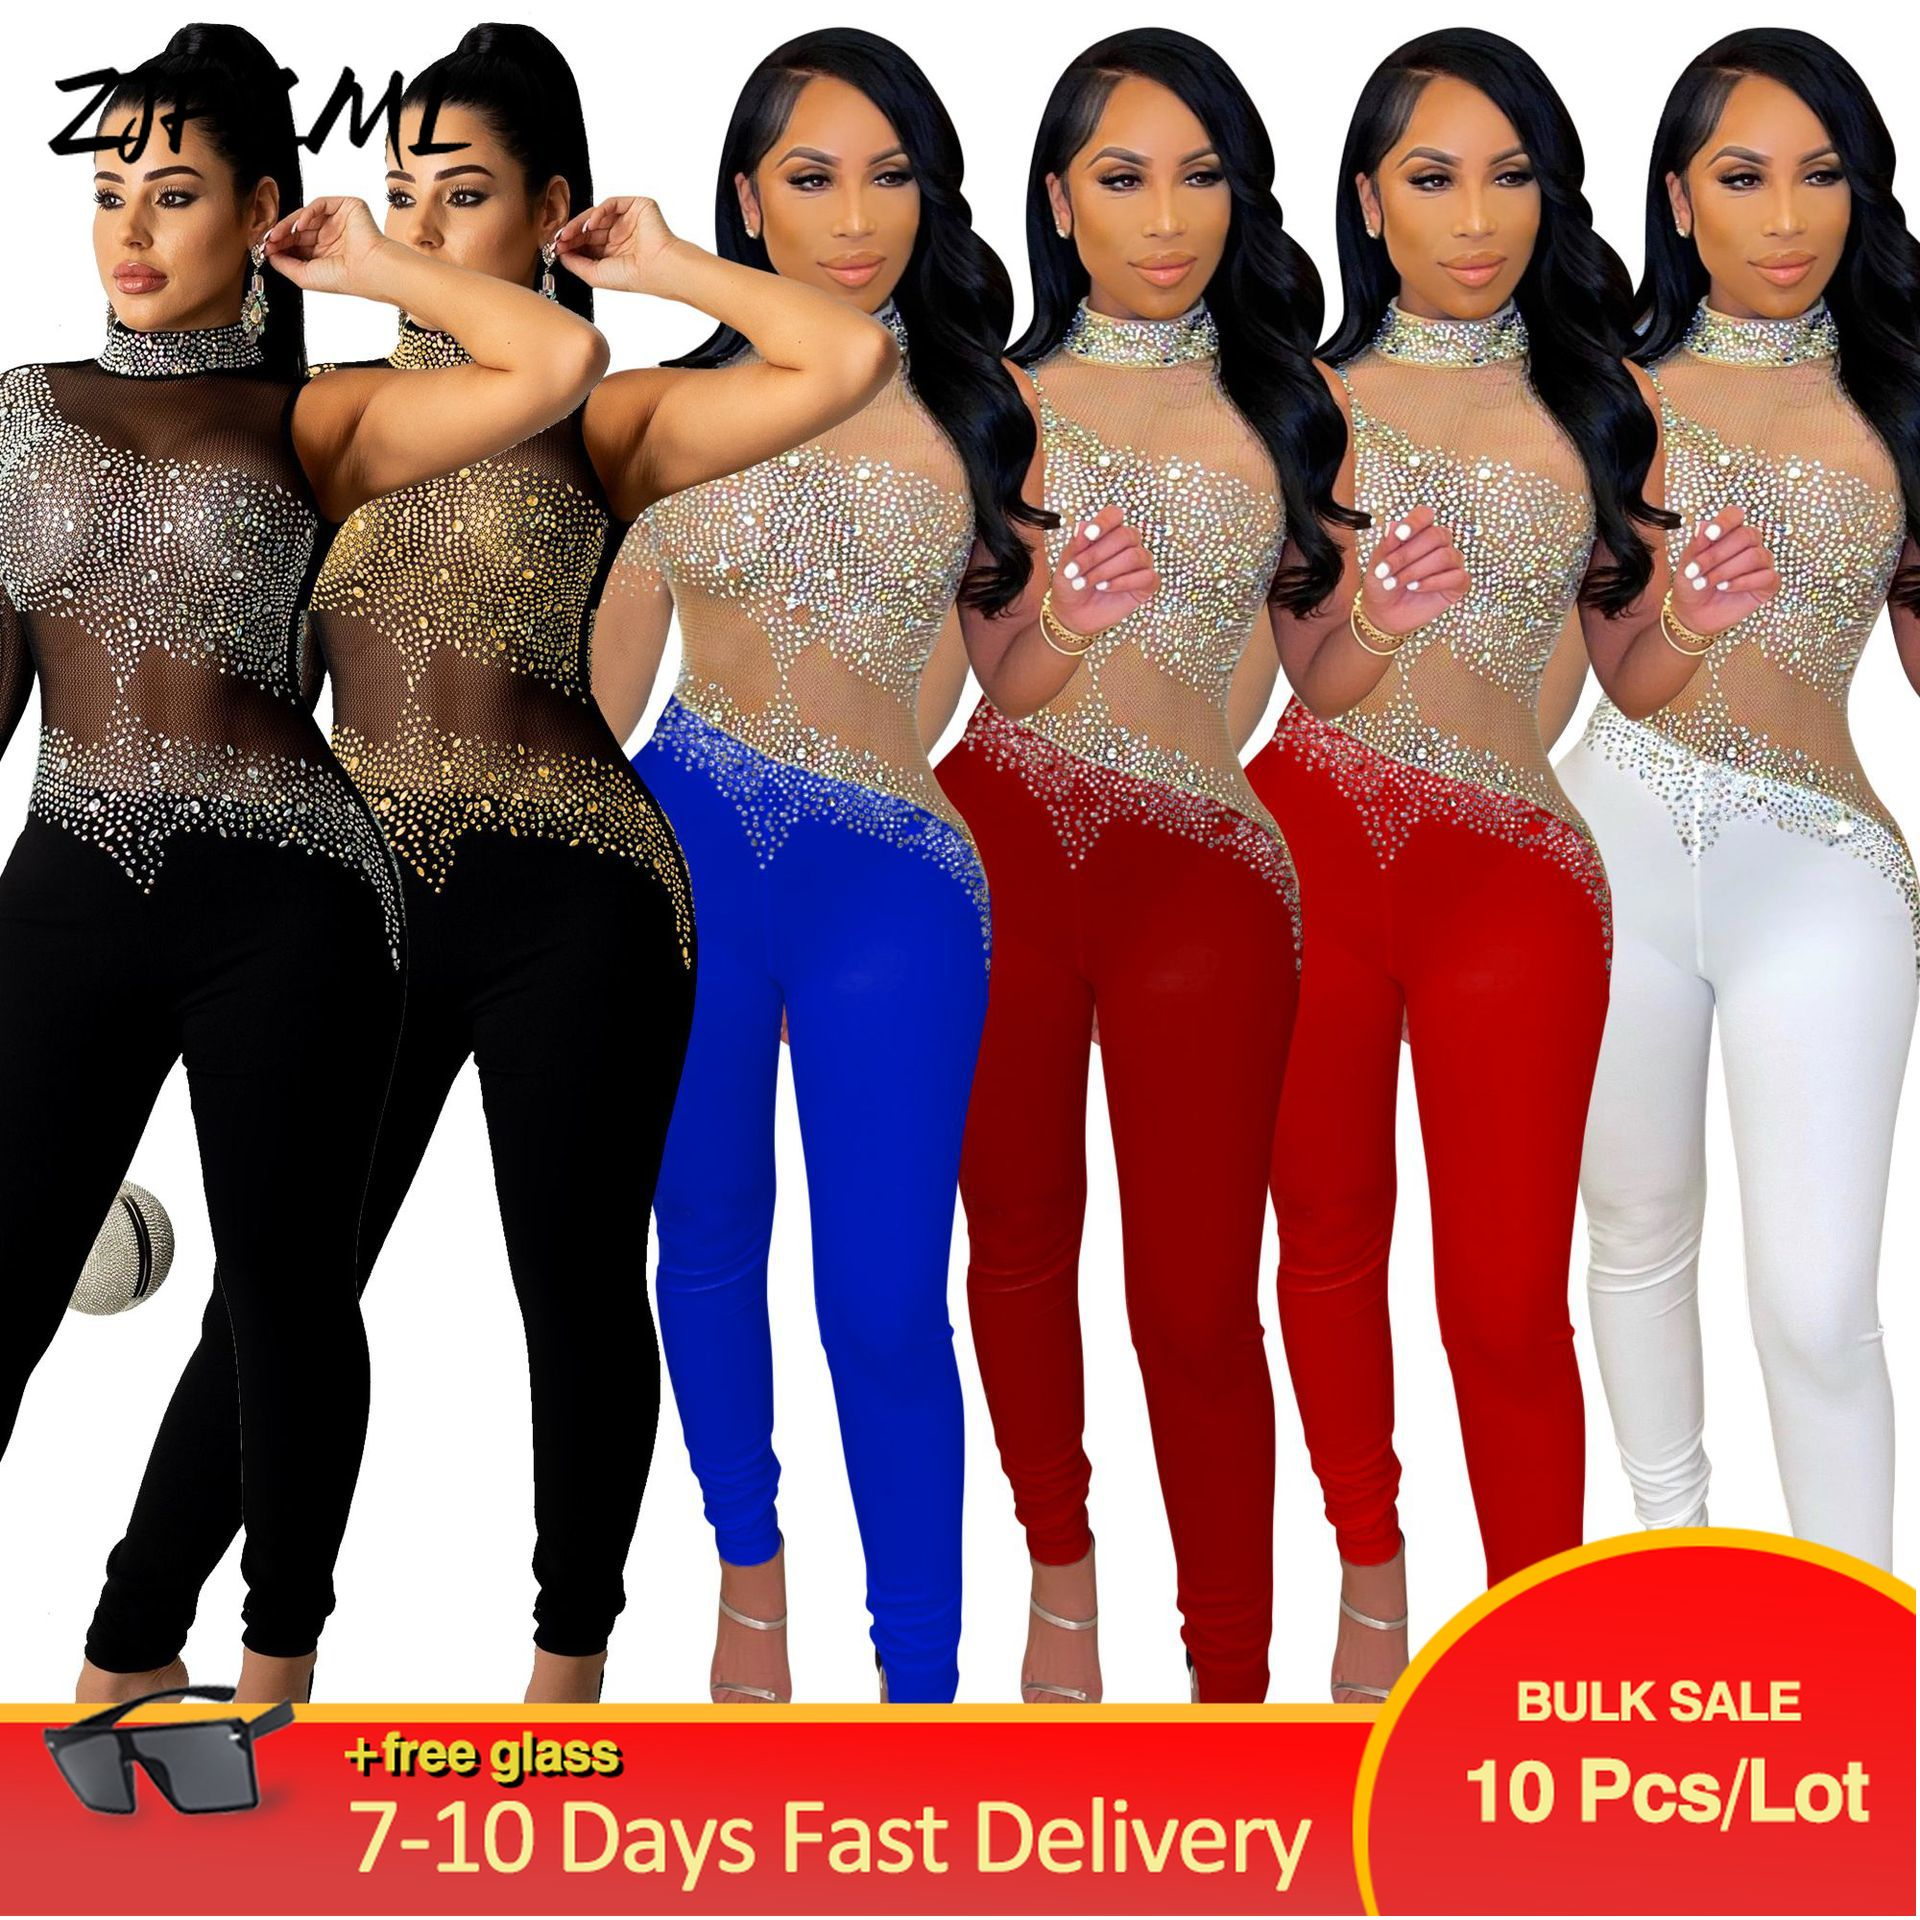 Bulk Wholesale Items Lots Womens Long Party Club Jumpsuit Sexy Sheer Mesh Rhinestones Single Full Sleeve Bodycon Skinny Outfits